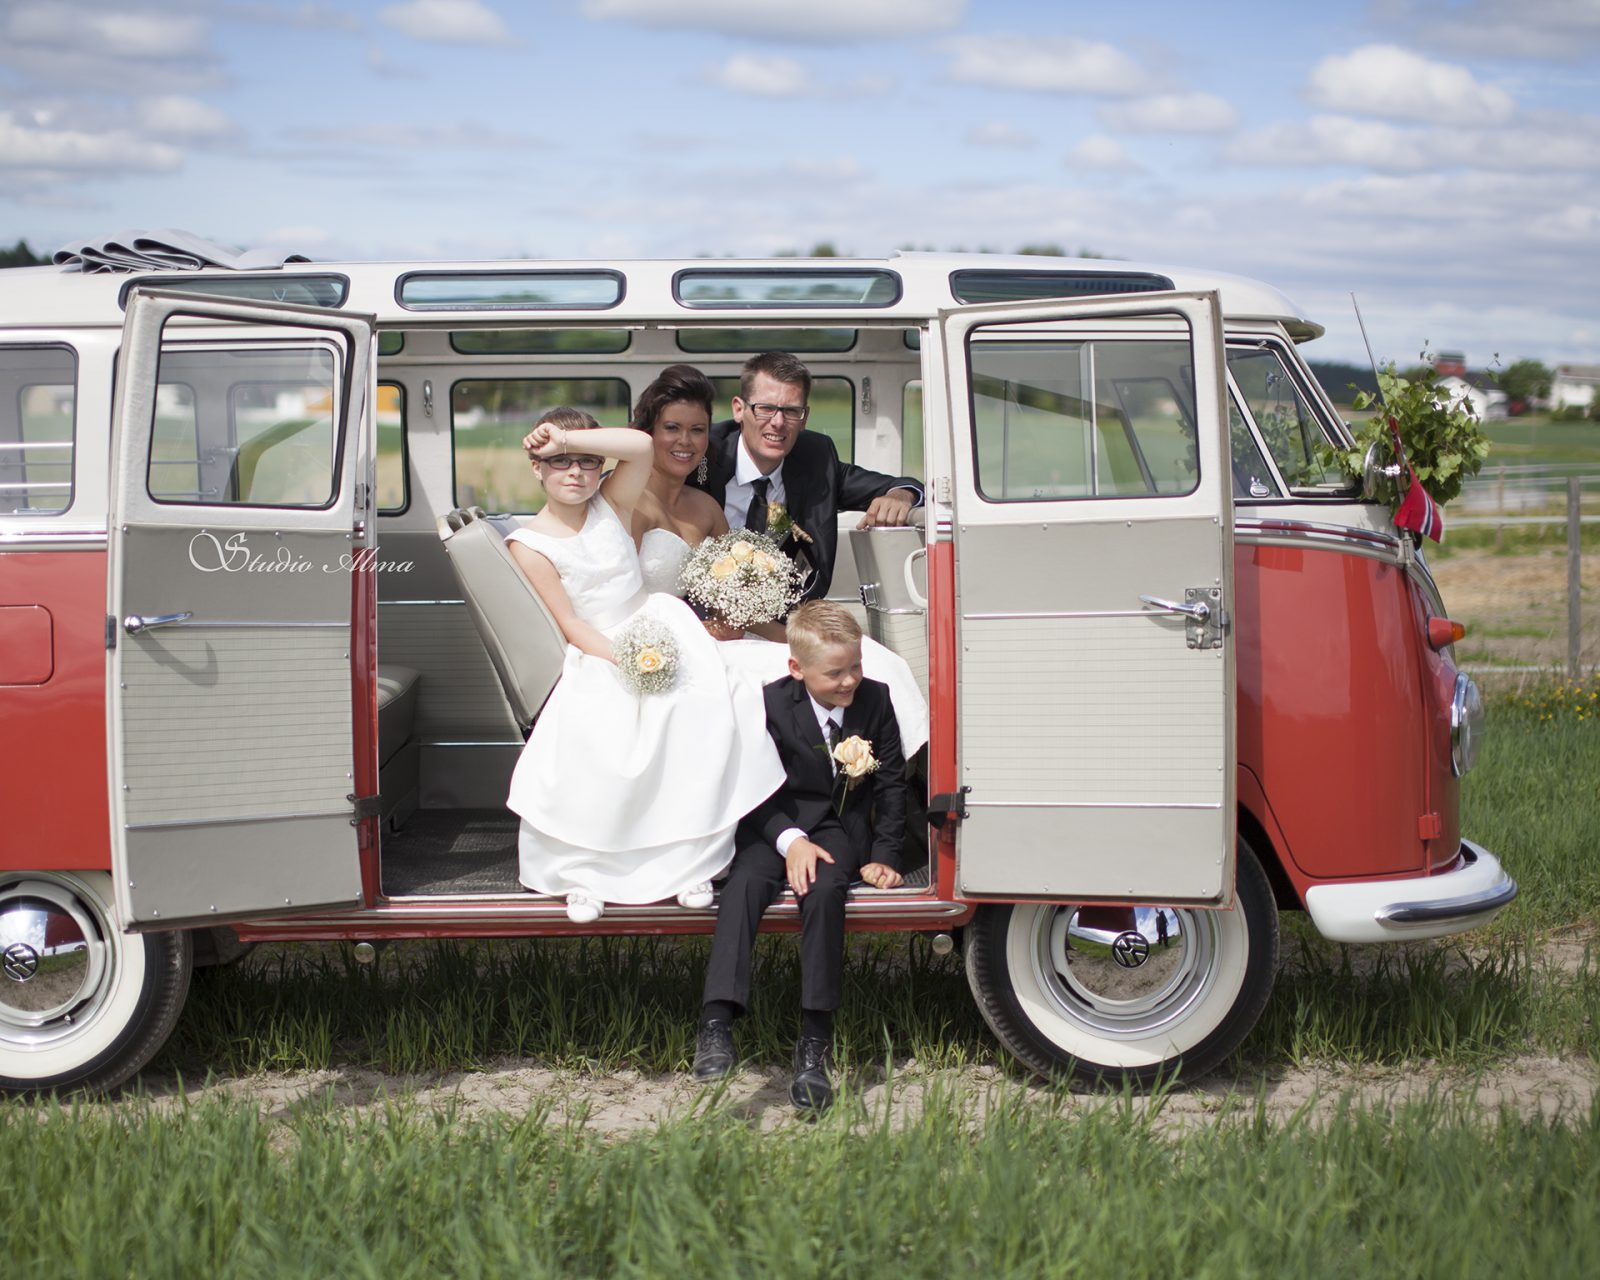 weddingday-studioalma-bryllup-weddingcar